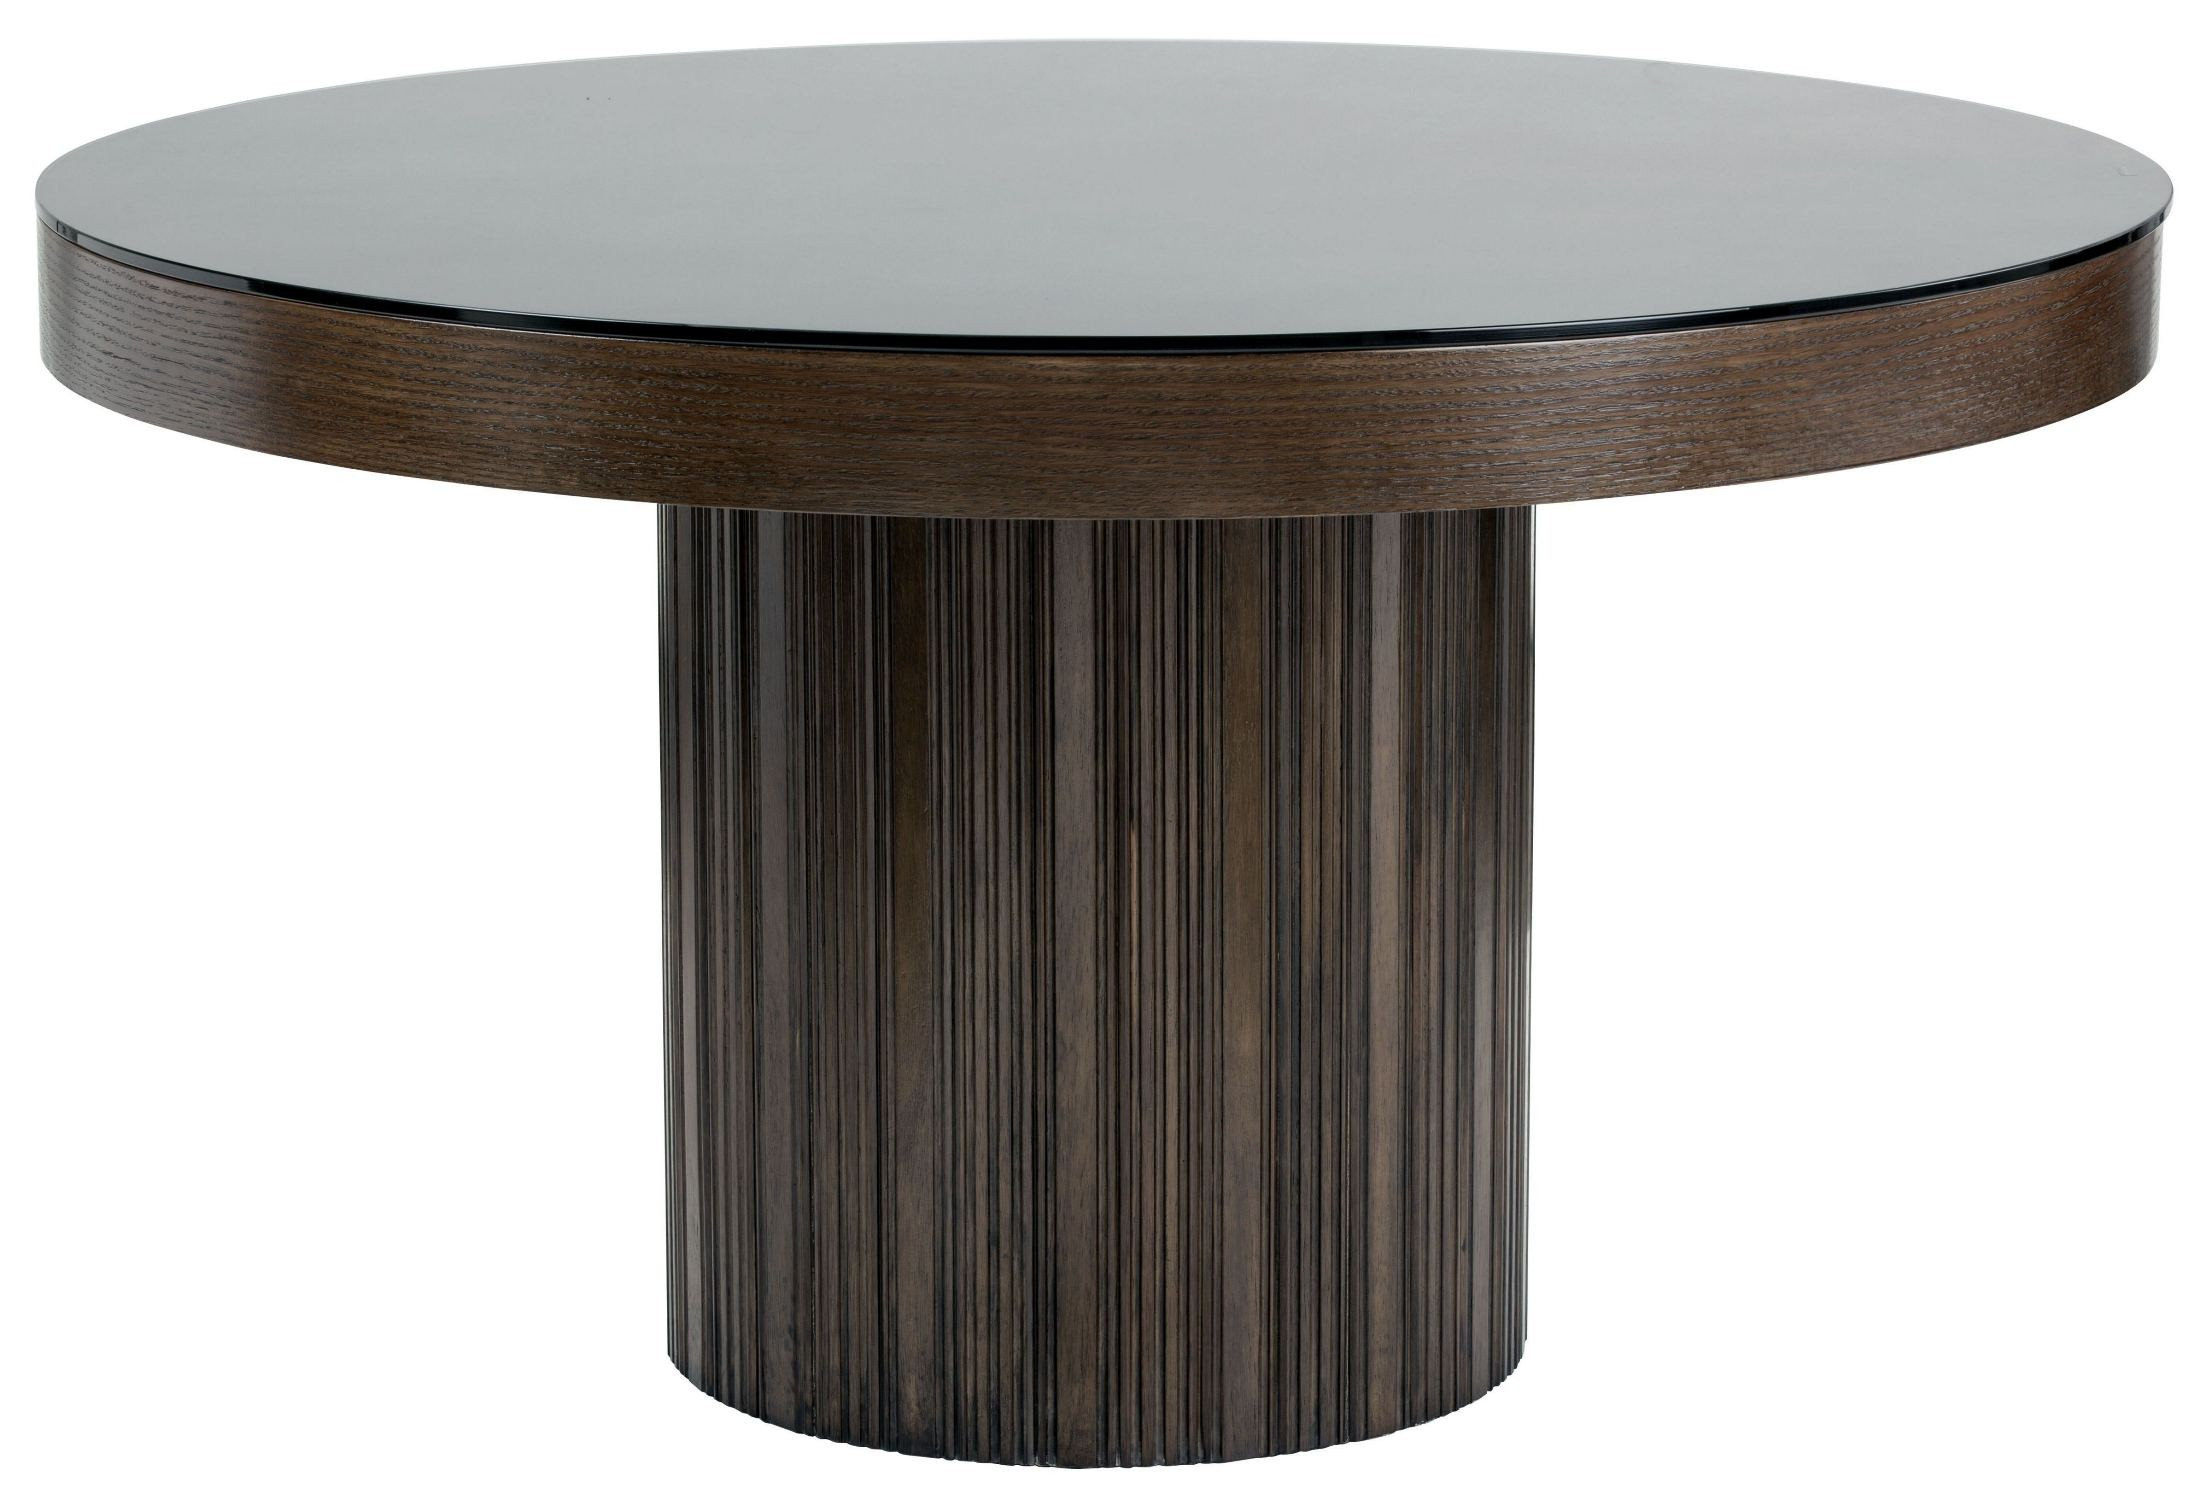 Jakarta round black glass top dining table from sunpan for Black glass dining table